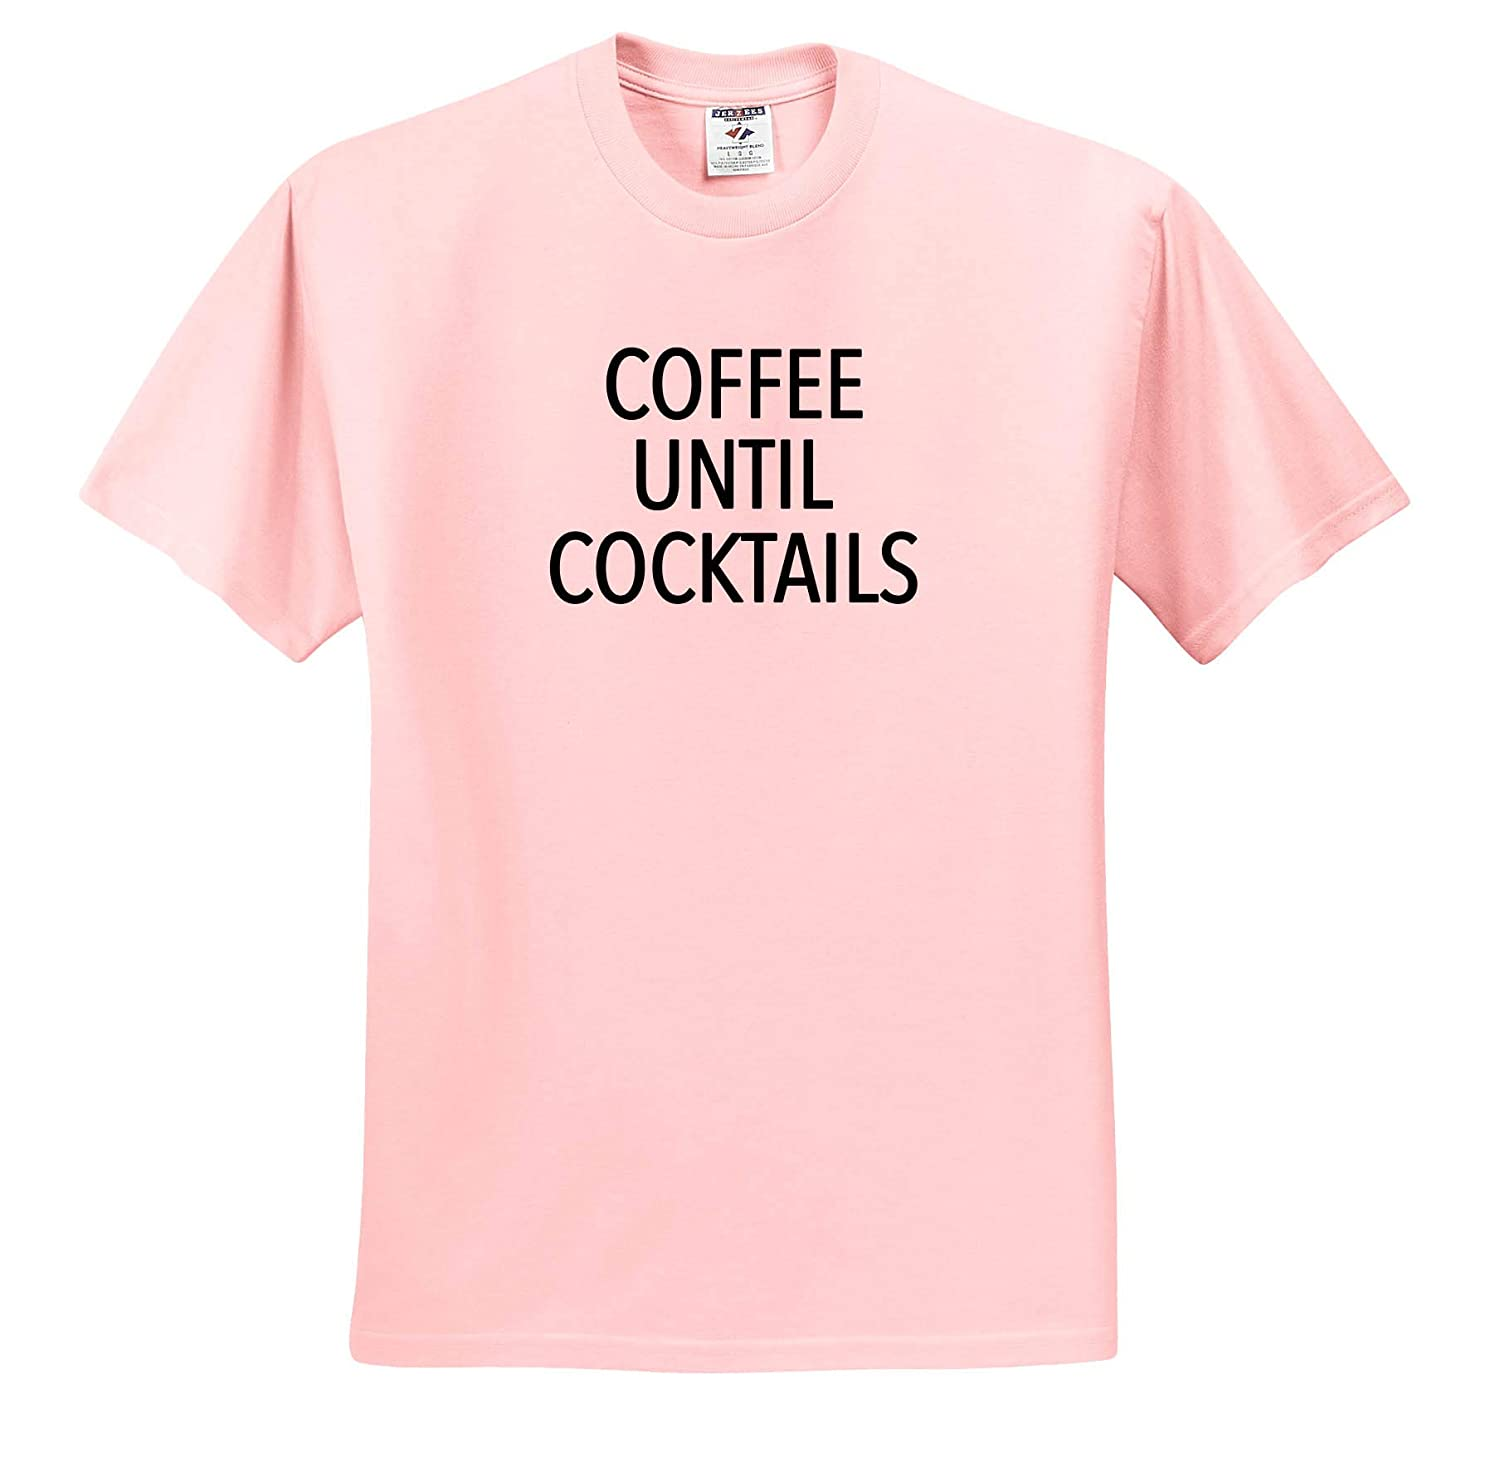 3dRose EvaDane ts/_315536 Coffee Until Cocktails Black Adult T-Shirt XL Funny Sayings